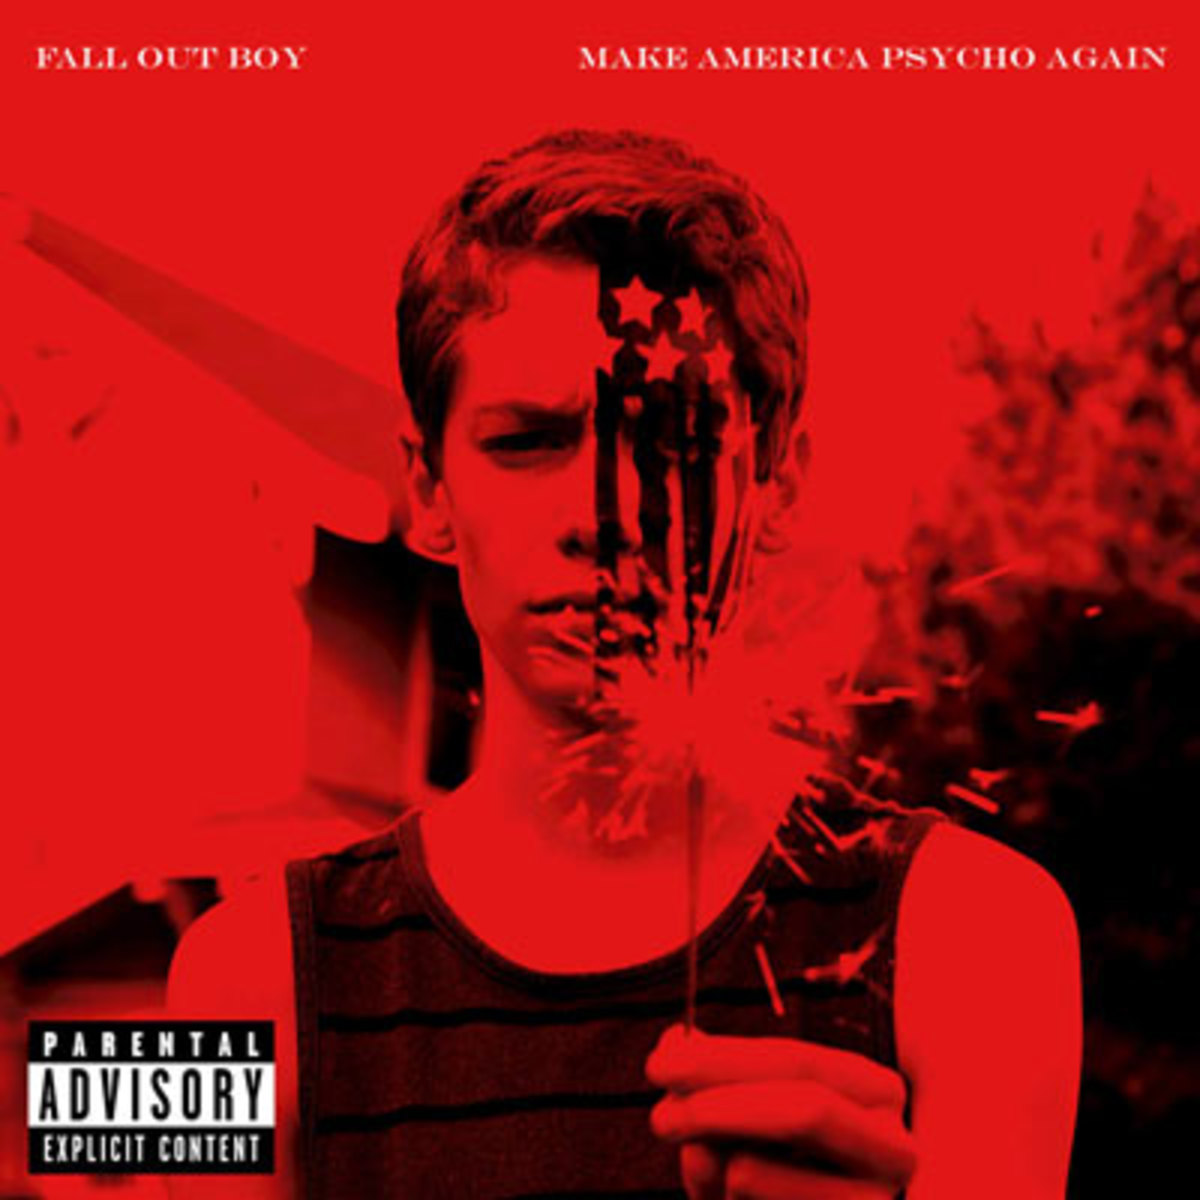 fall-out-boy-make-america-psycho-again.jpg